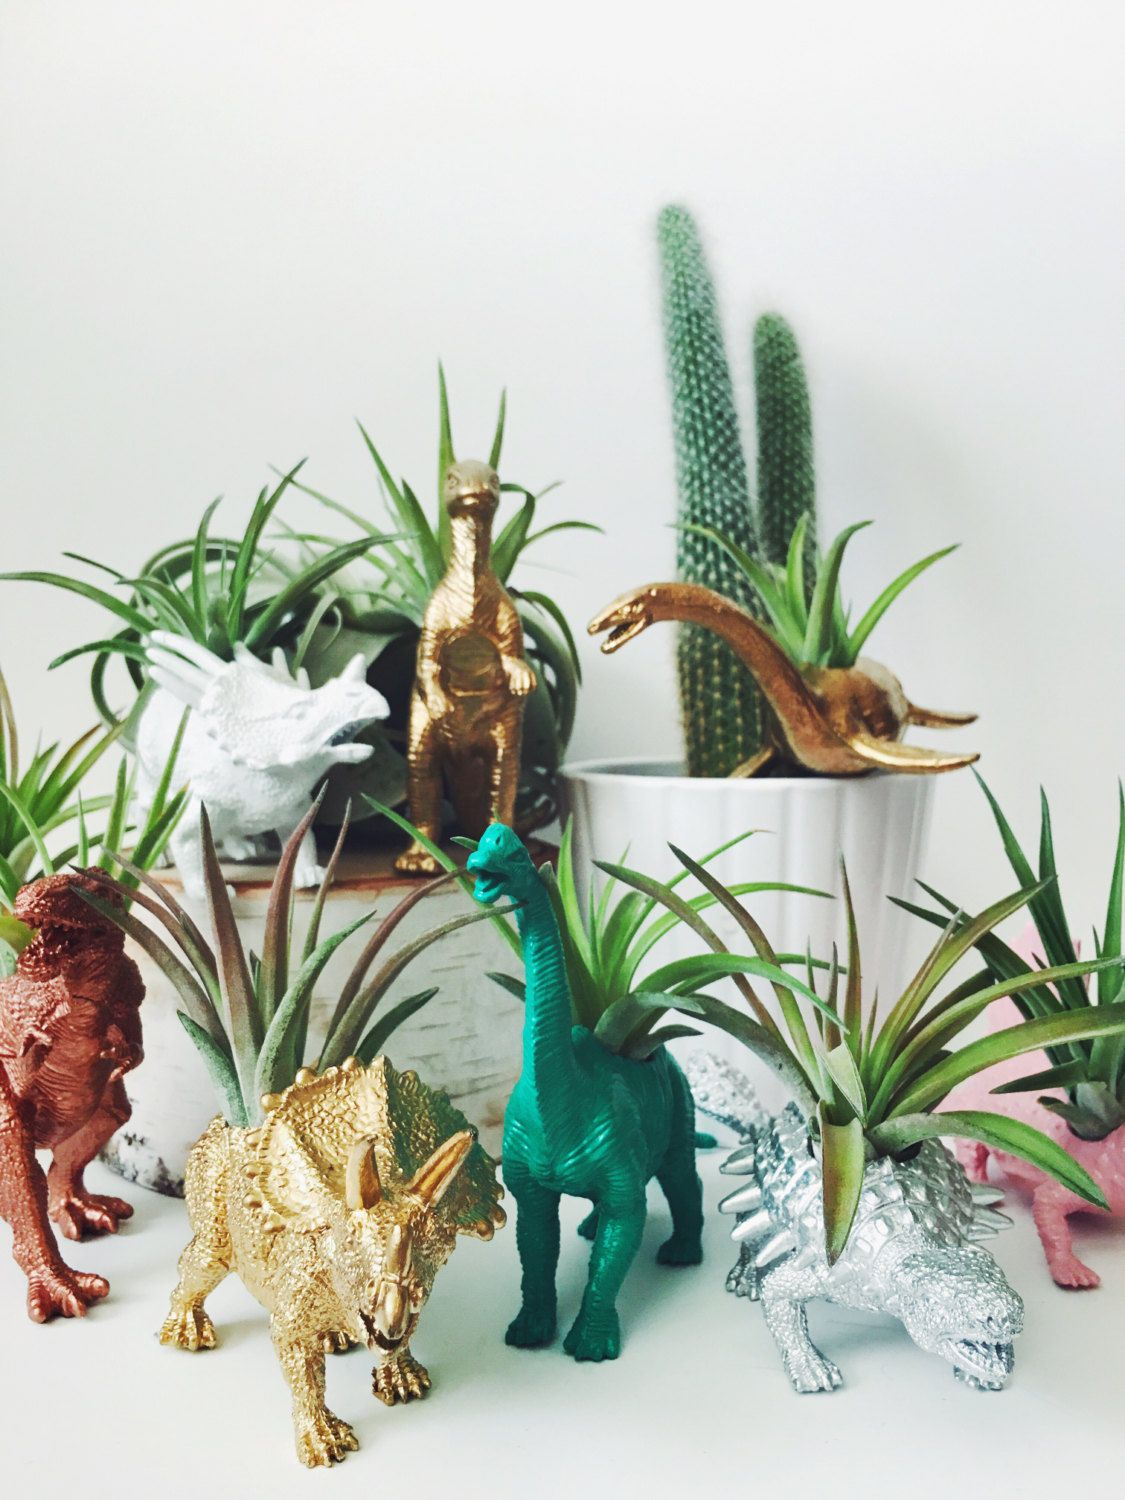 Customize your own small dinosaur planter with air plant for Indoor plant gift ideas